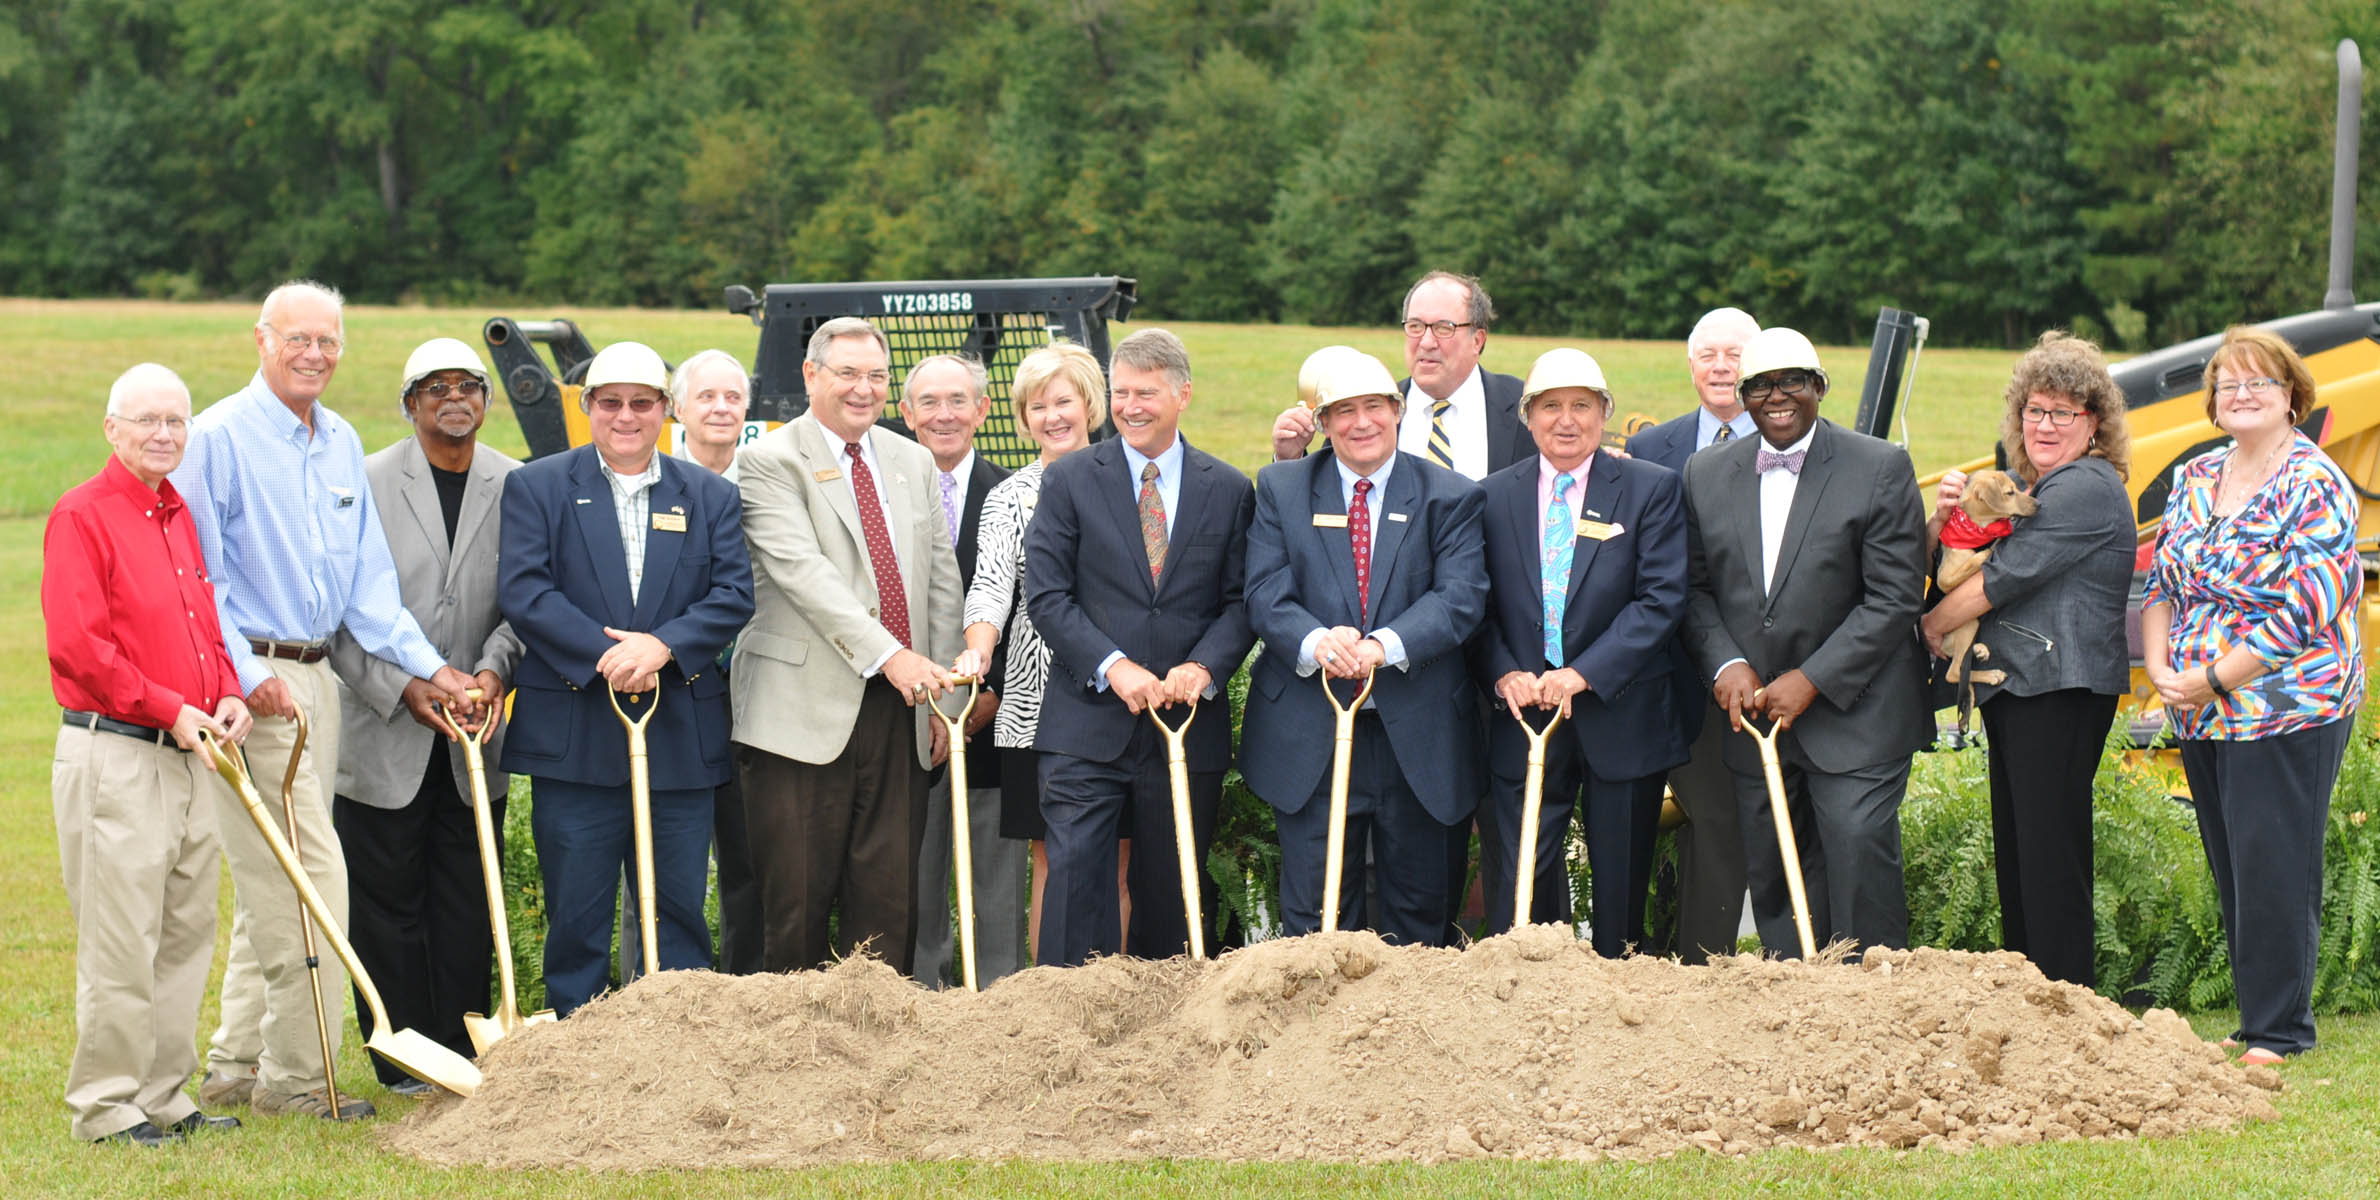 Click to enlarge,  Members of the Central Carolina Community College Board of Trustees join with former North Carolina Lt. Gov. Dennis Wicker and members of the Lee County Board of Commissioners for the groundbreaking ceremony for the four Central Carolina Community College bond projects that were approved by Lee County voters in November 2014.